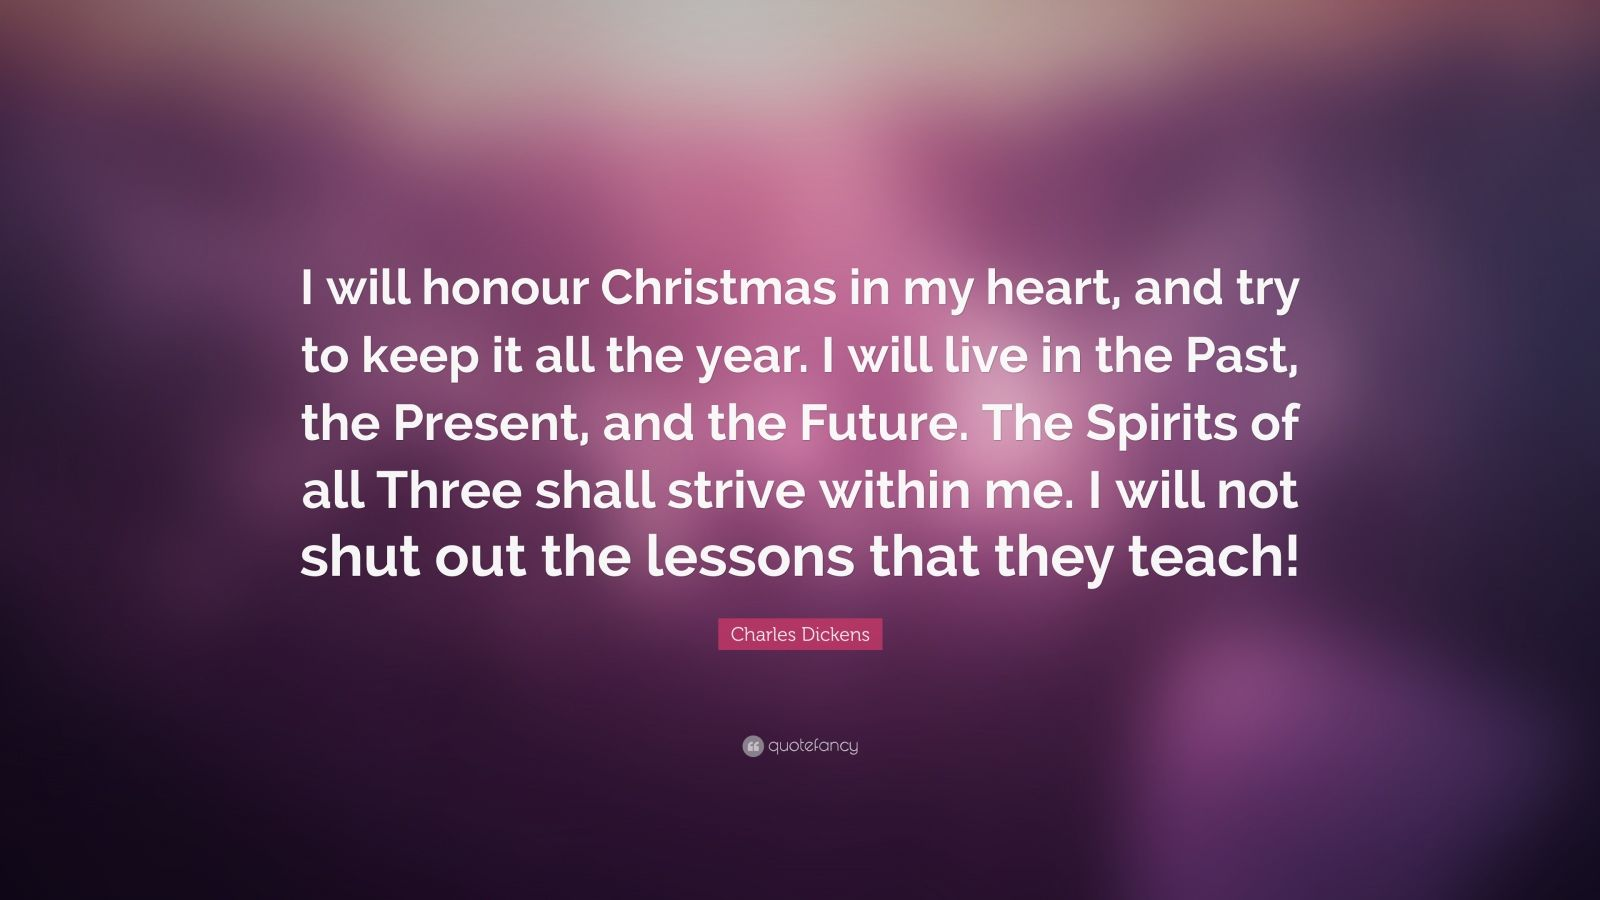 "Charles Dickens Quote: ""I will honour Christmas in my heart, and try to keep it all the year. I will live in the Past, the Present, and the Future. The Spirits of all Three shall strive within me. I will not shut out the lessons that they teach!"""